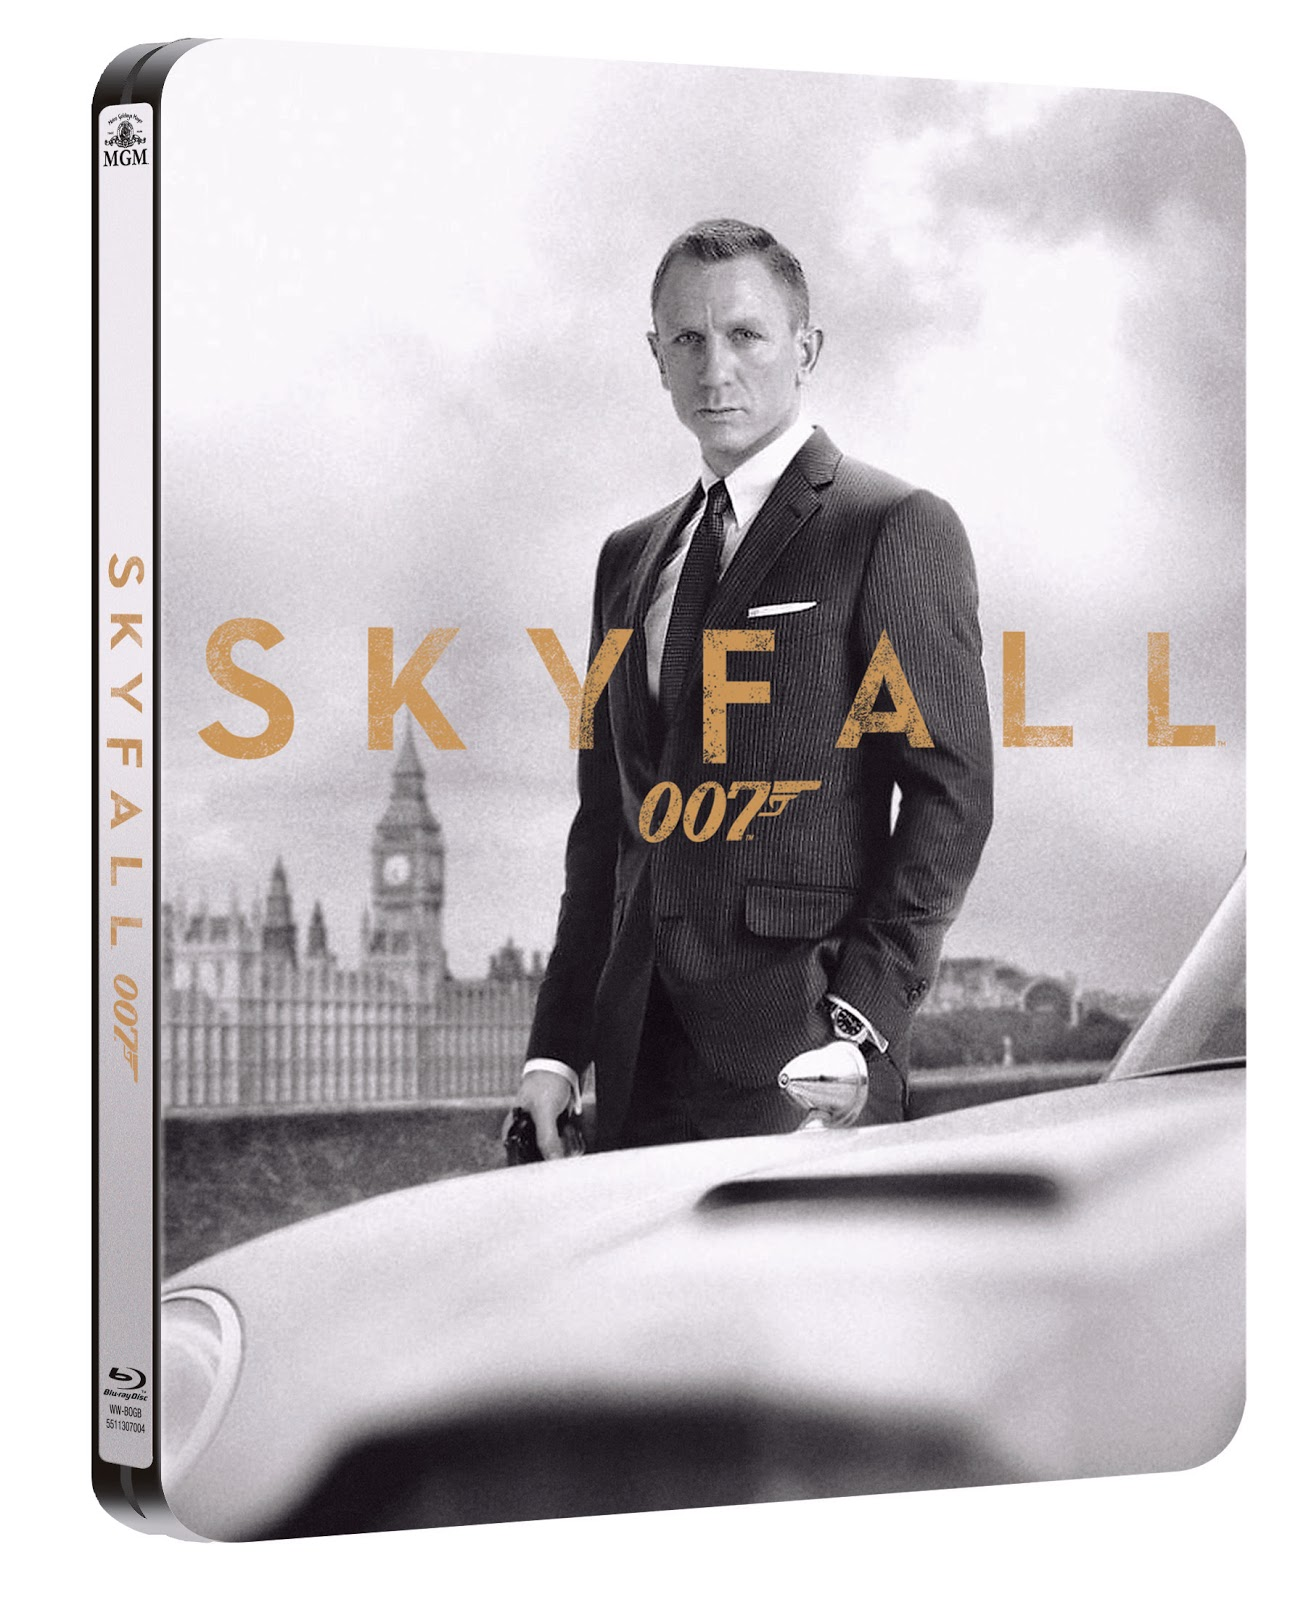 skyfall rdquo limited edition - photo #17